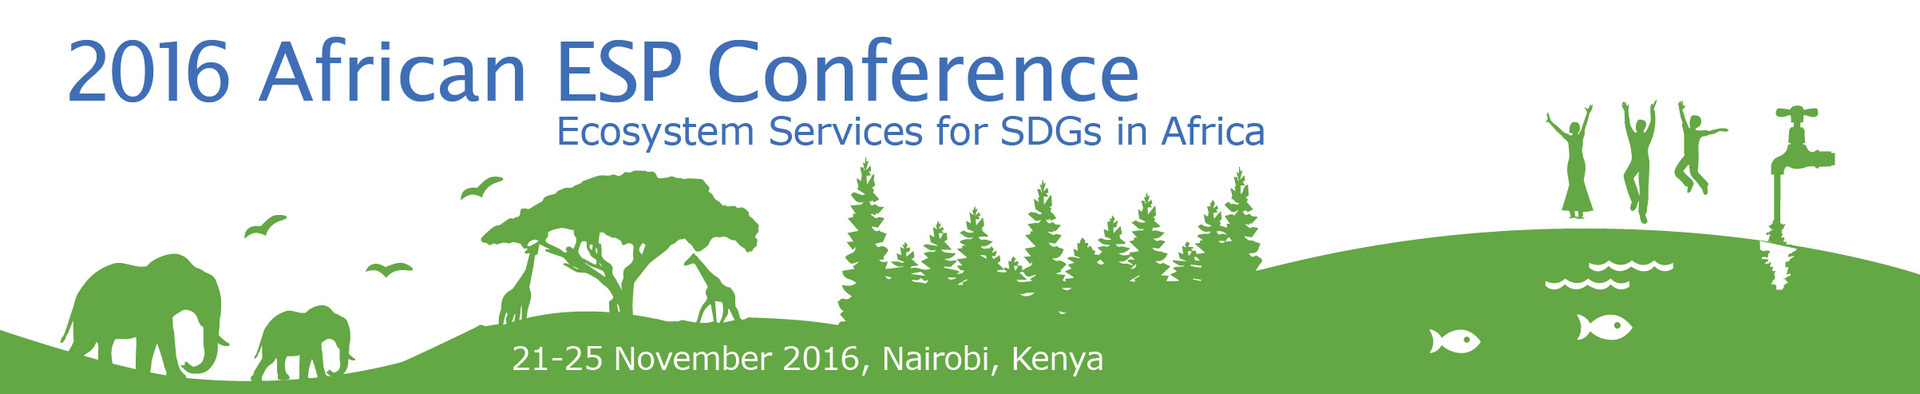 African ESP Conference 2016